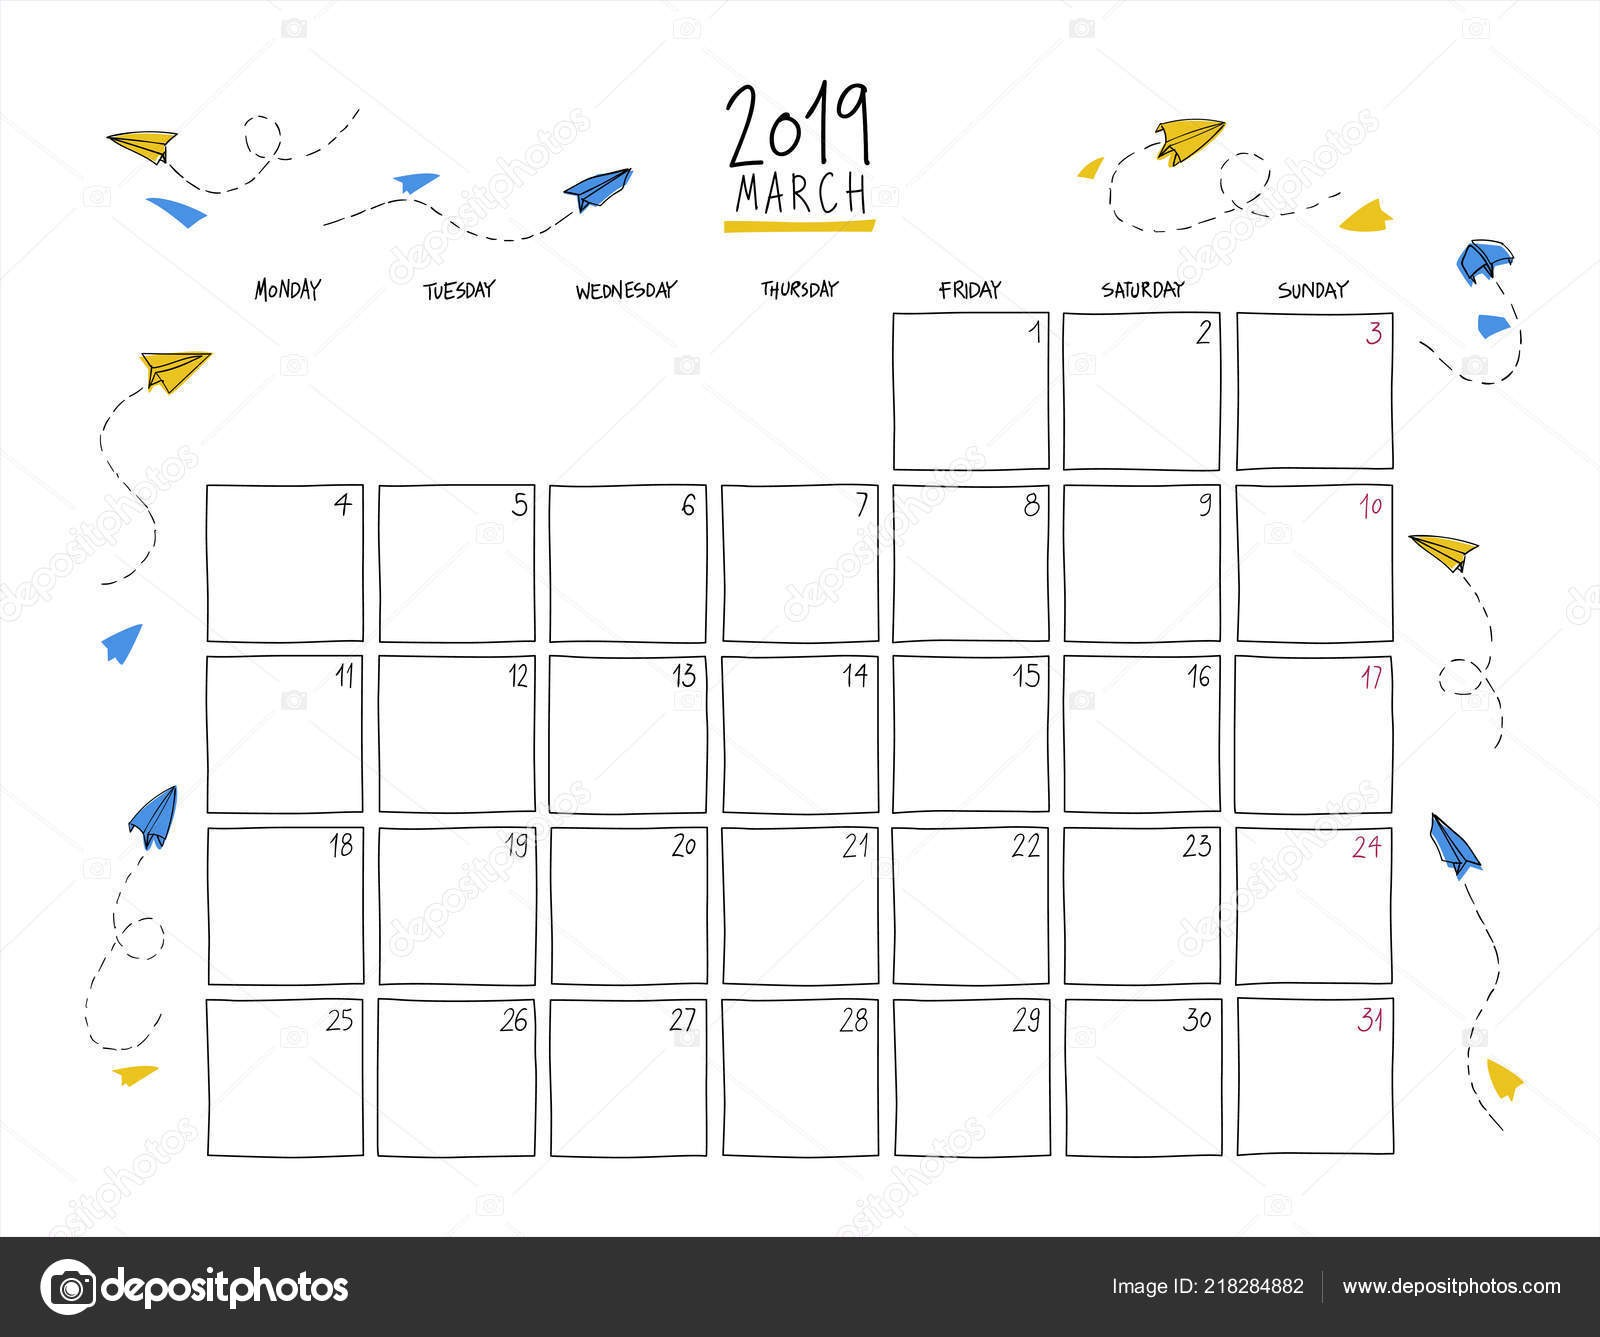 March Calendar 2019 Más Recientes March 2019 Wall Calendar Colorful Sketch Horizontal Template Letter Of March Calendar 2019 Más Populares February March Calendar 2019 2018 Printable Calendar Store